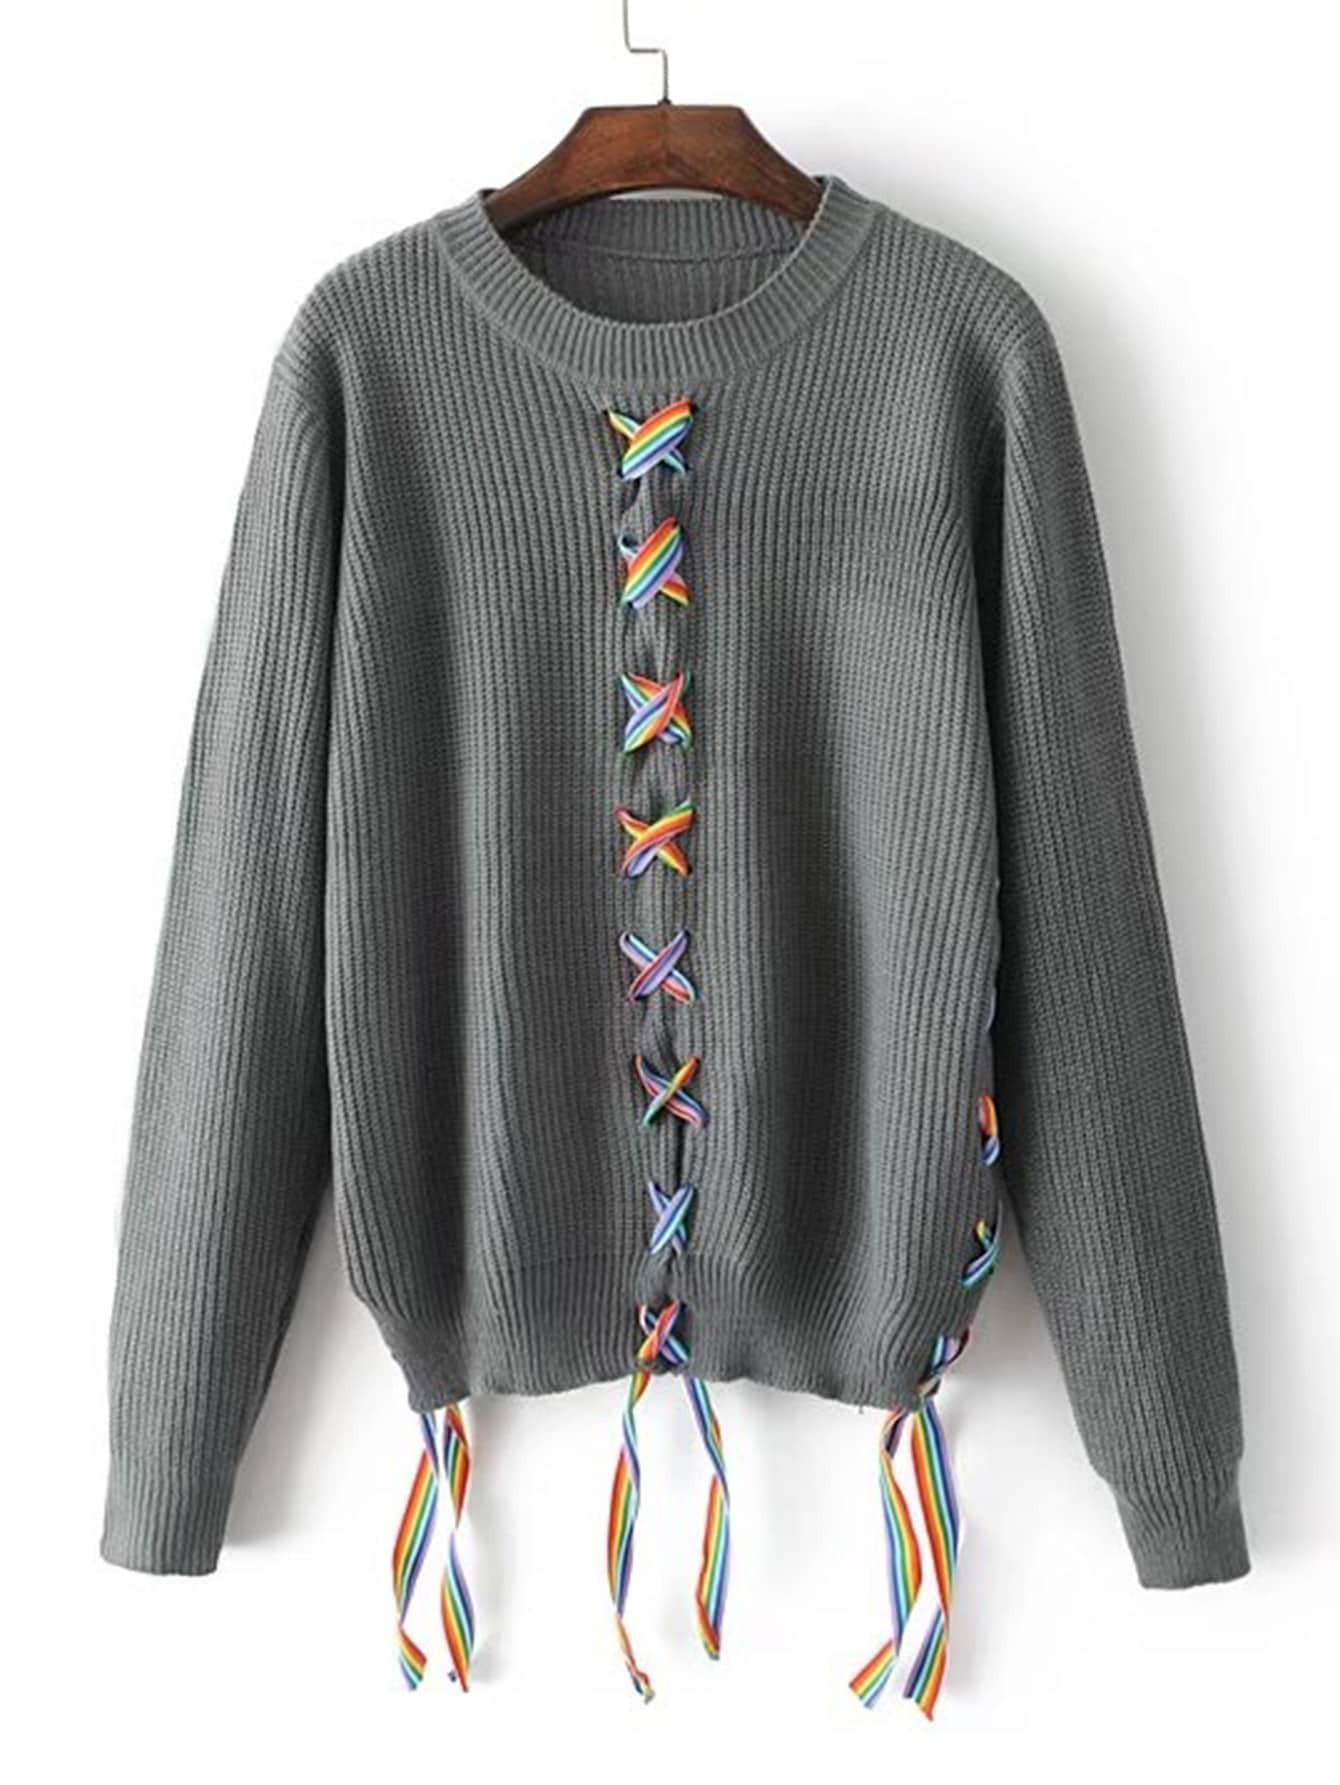 Contrast Lace Up Ribbed Knit Sweater RKNI170911211